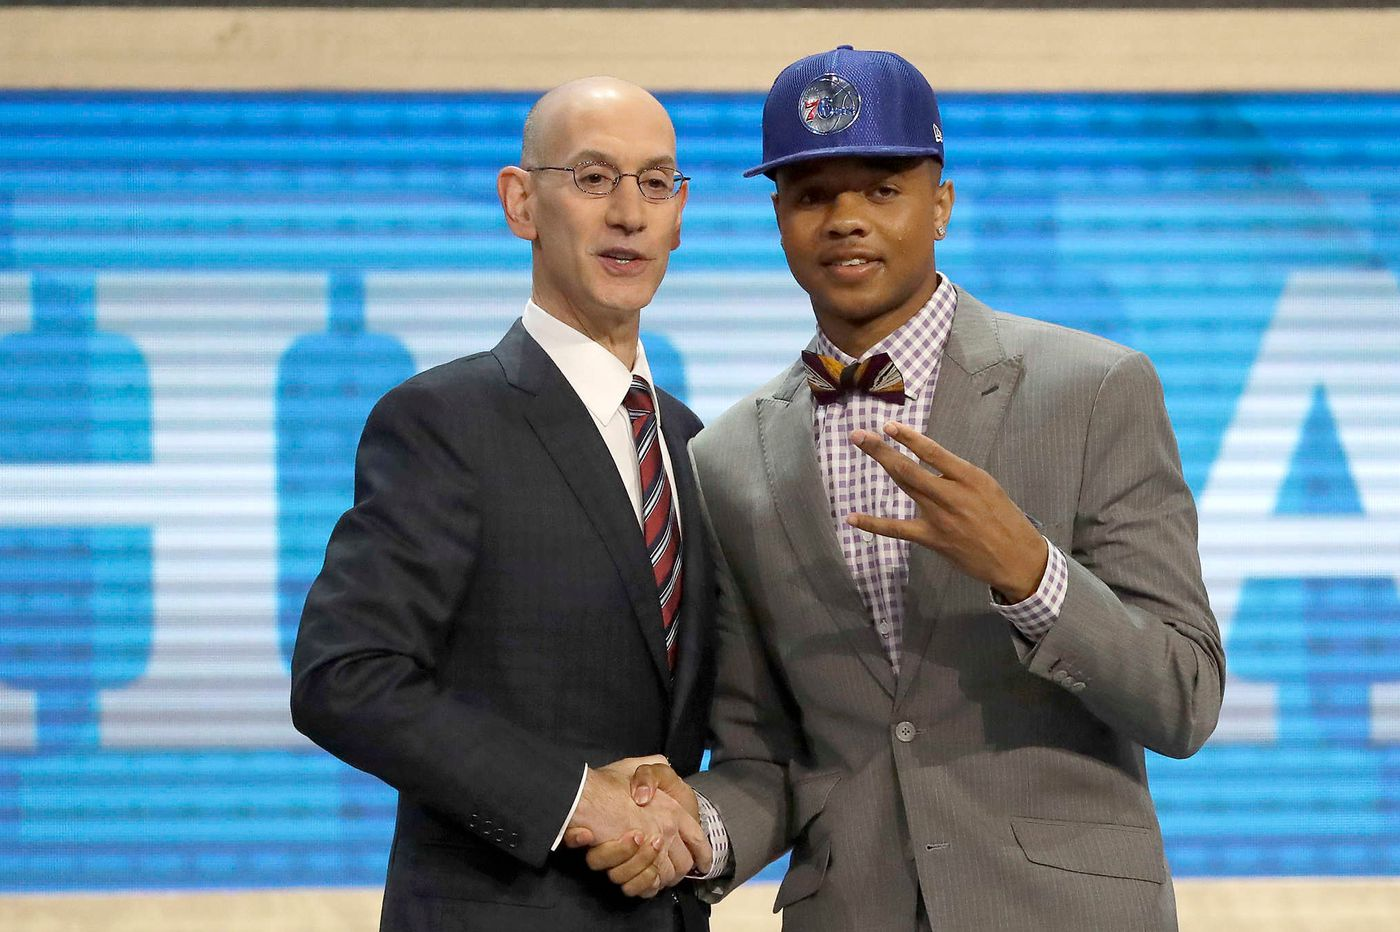 Markelle Fultz, traded by the Sixers to the Magic, isn't the worst No. 1 pick in NBA draft history — yet